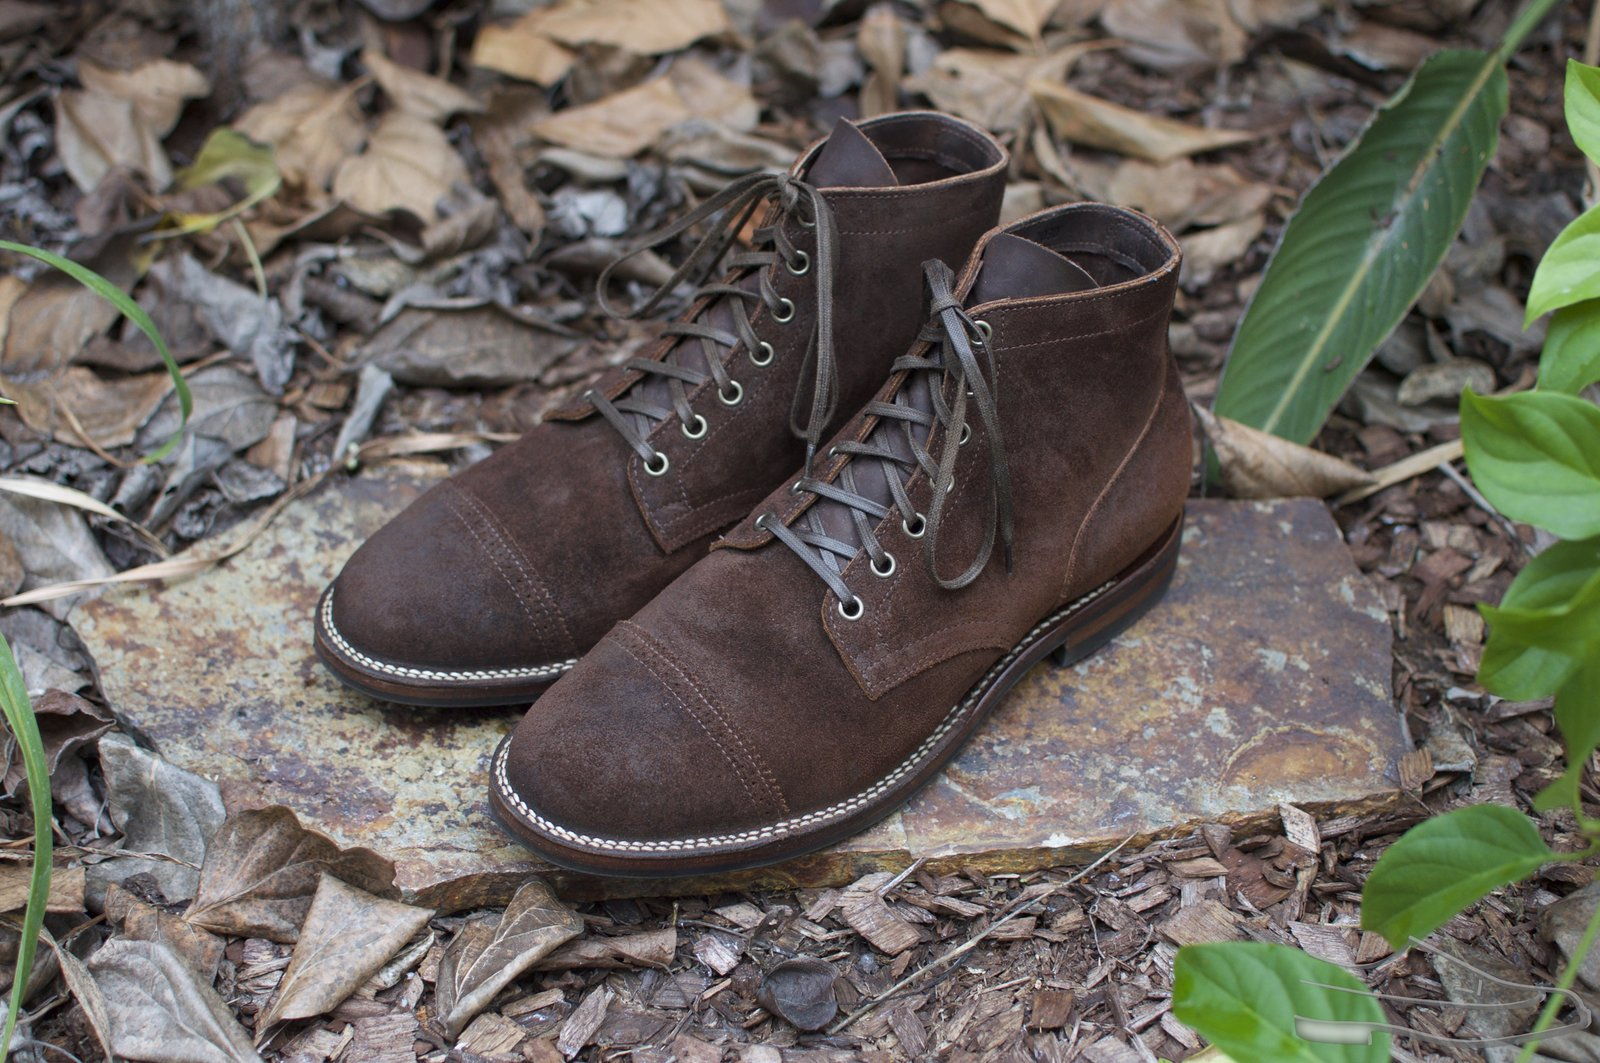 Viberg Tabacco Reverse Chamois Service Boots - 2020-10-23 - 1.jpg